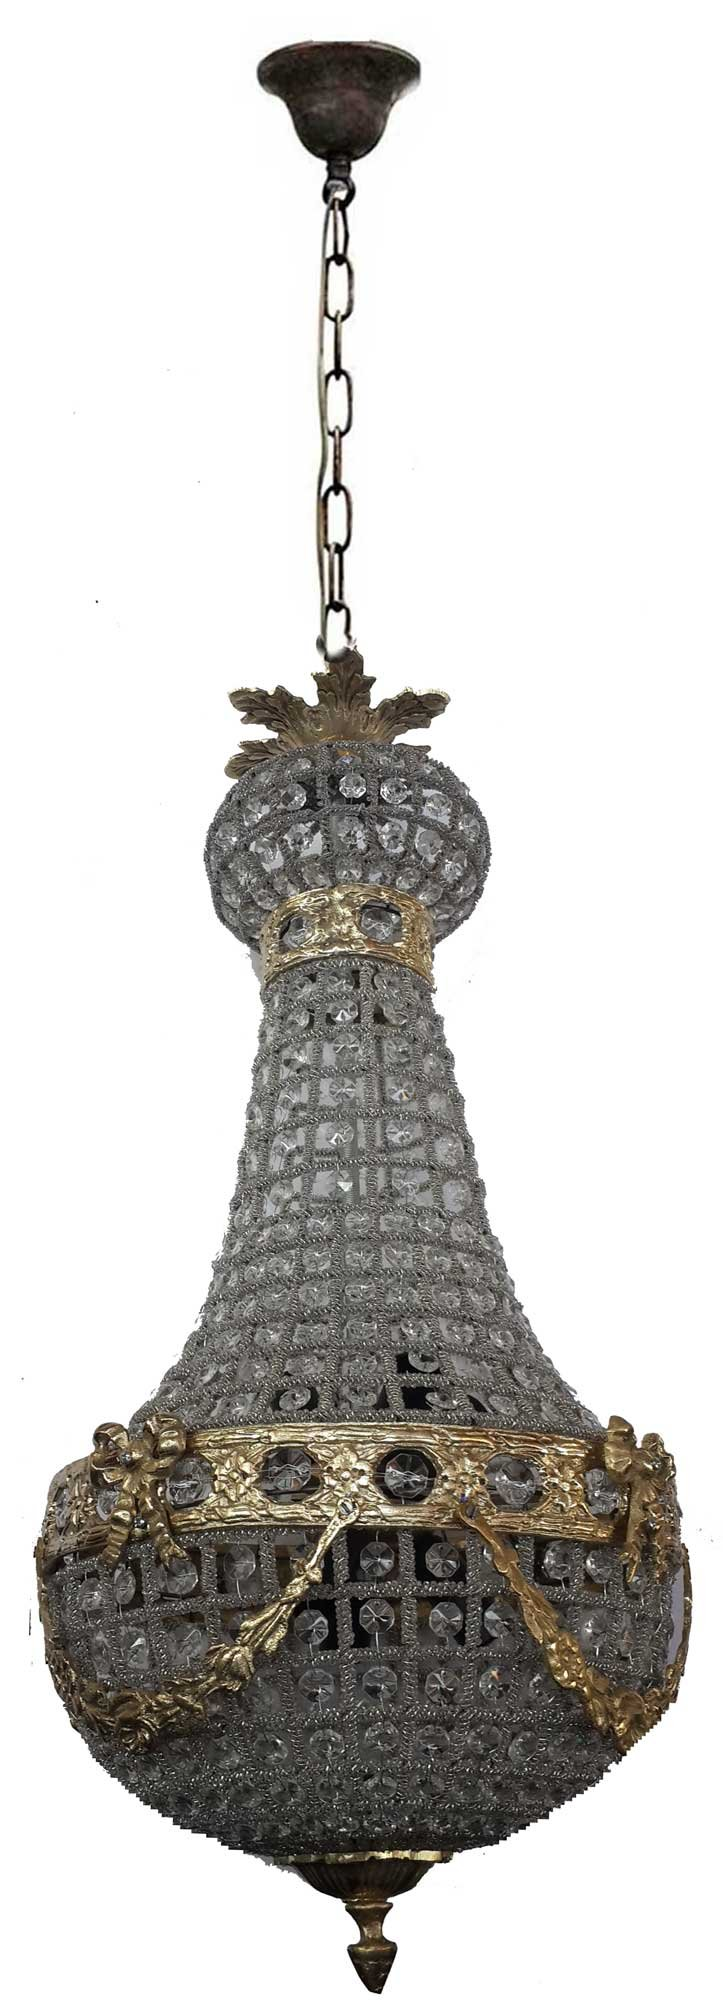 Egypt gift shops Bronze Finish Brass French Empire Antique Replica Basket Cage Crystal Chandelier Lamp Ceiling Lighting